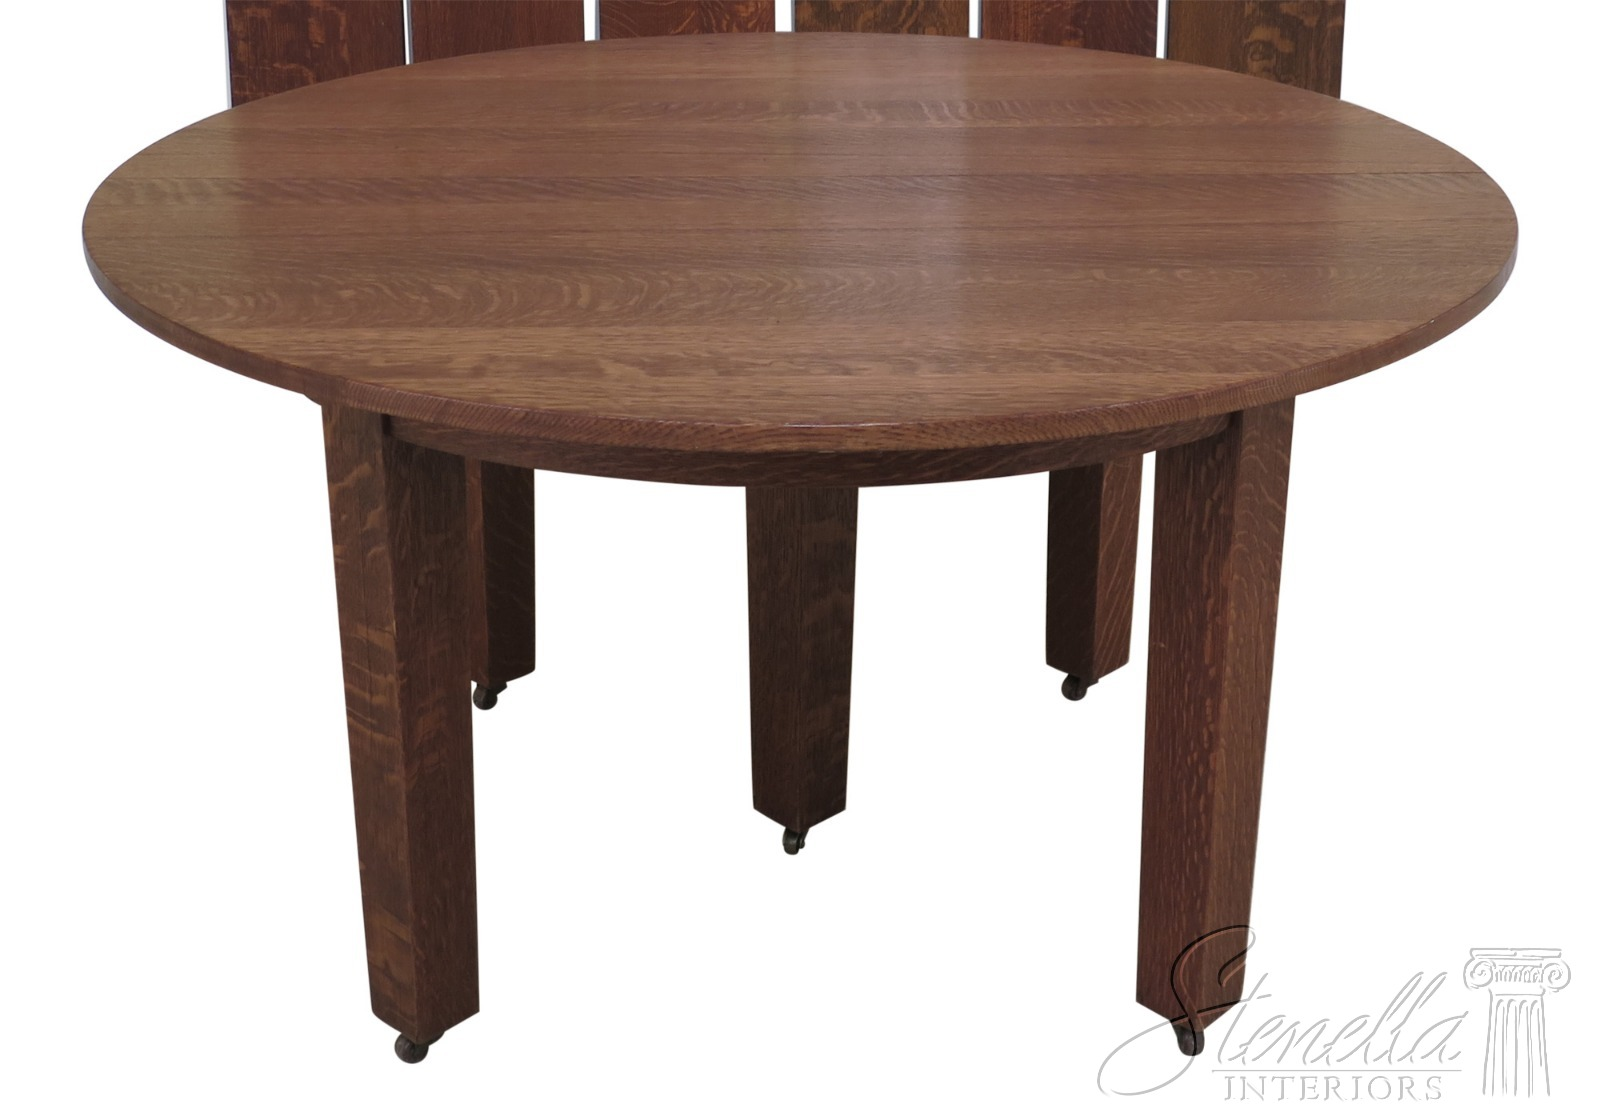 Details about F30715EC: STICKLEY Antique Original Round Dining Room  Extension Table